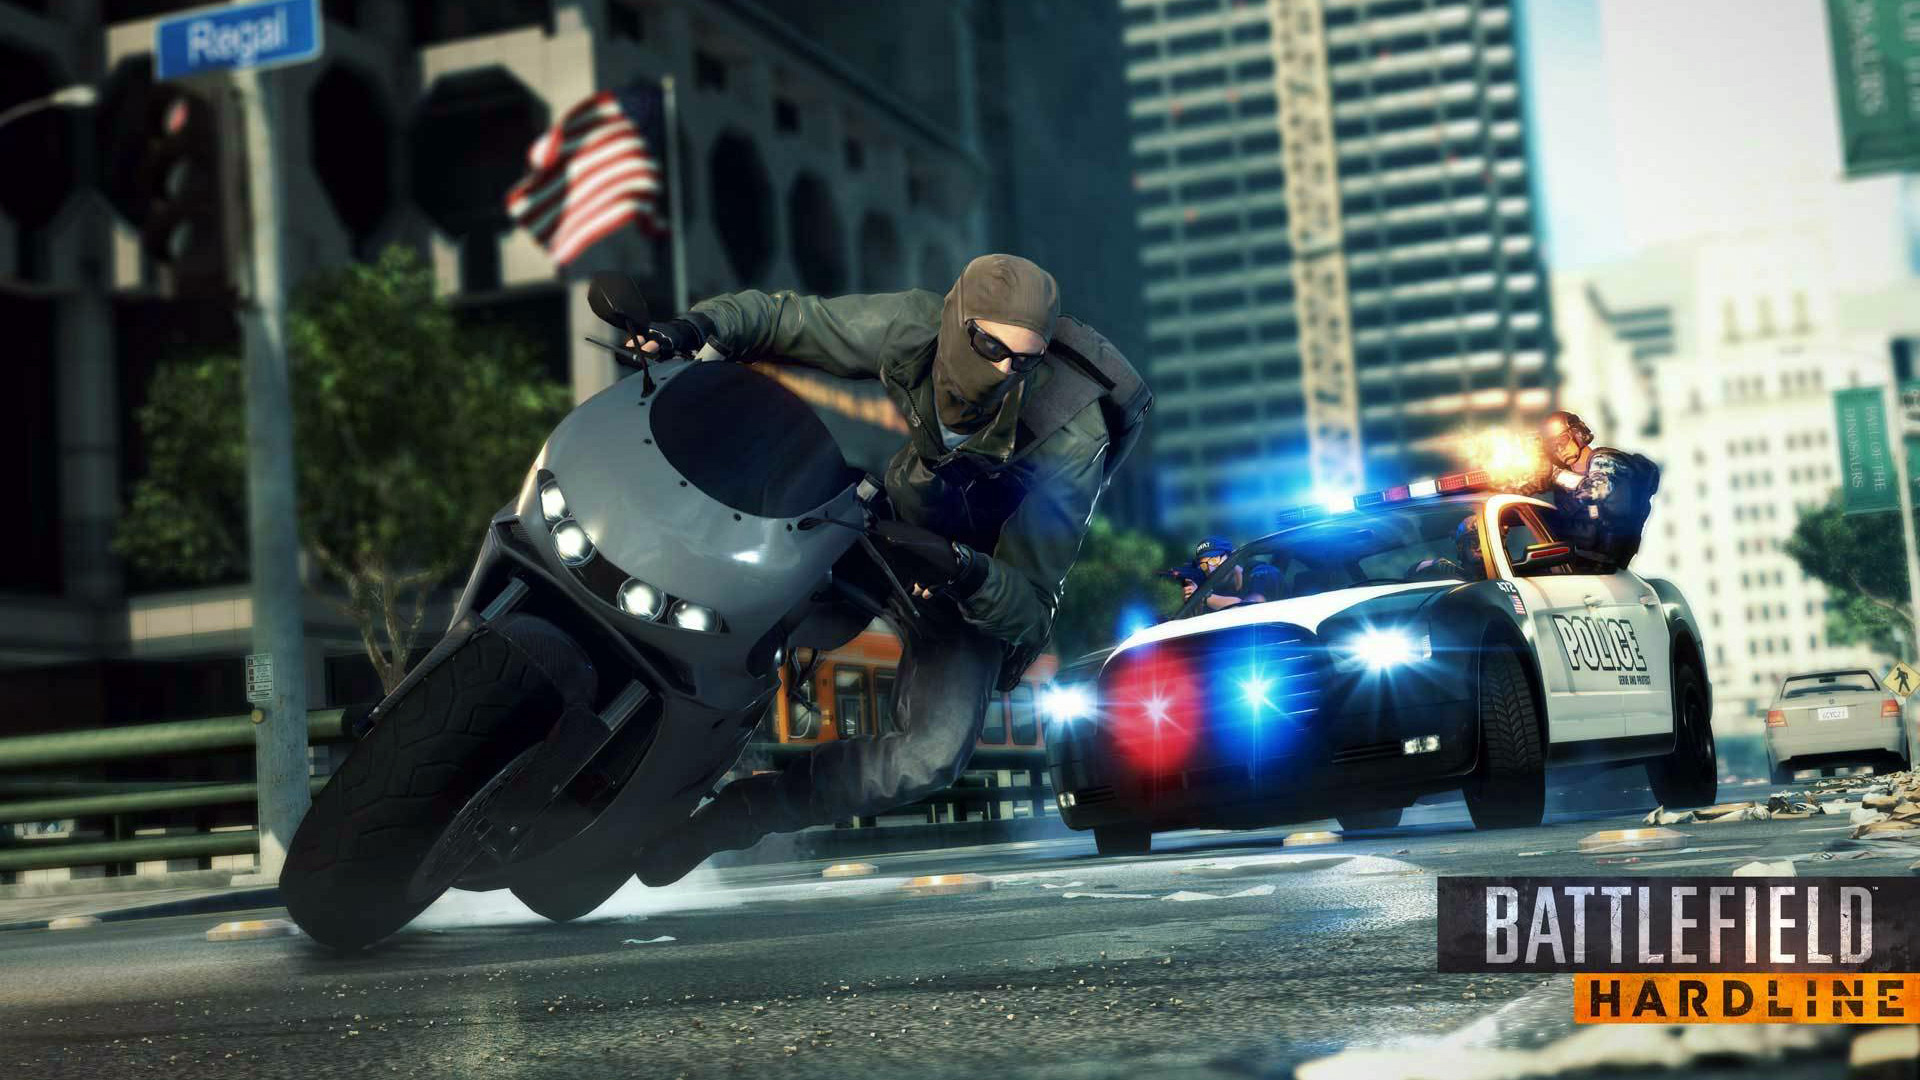 wallpaper (battlefield_hardline_7.jpg)